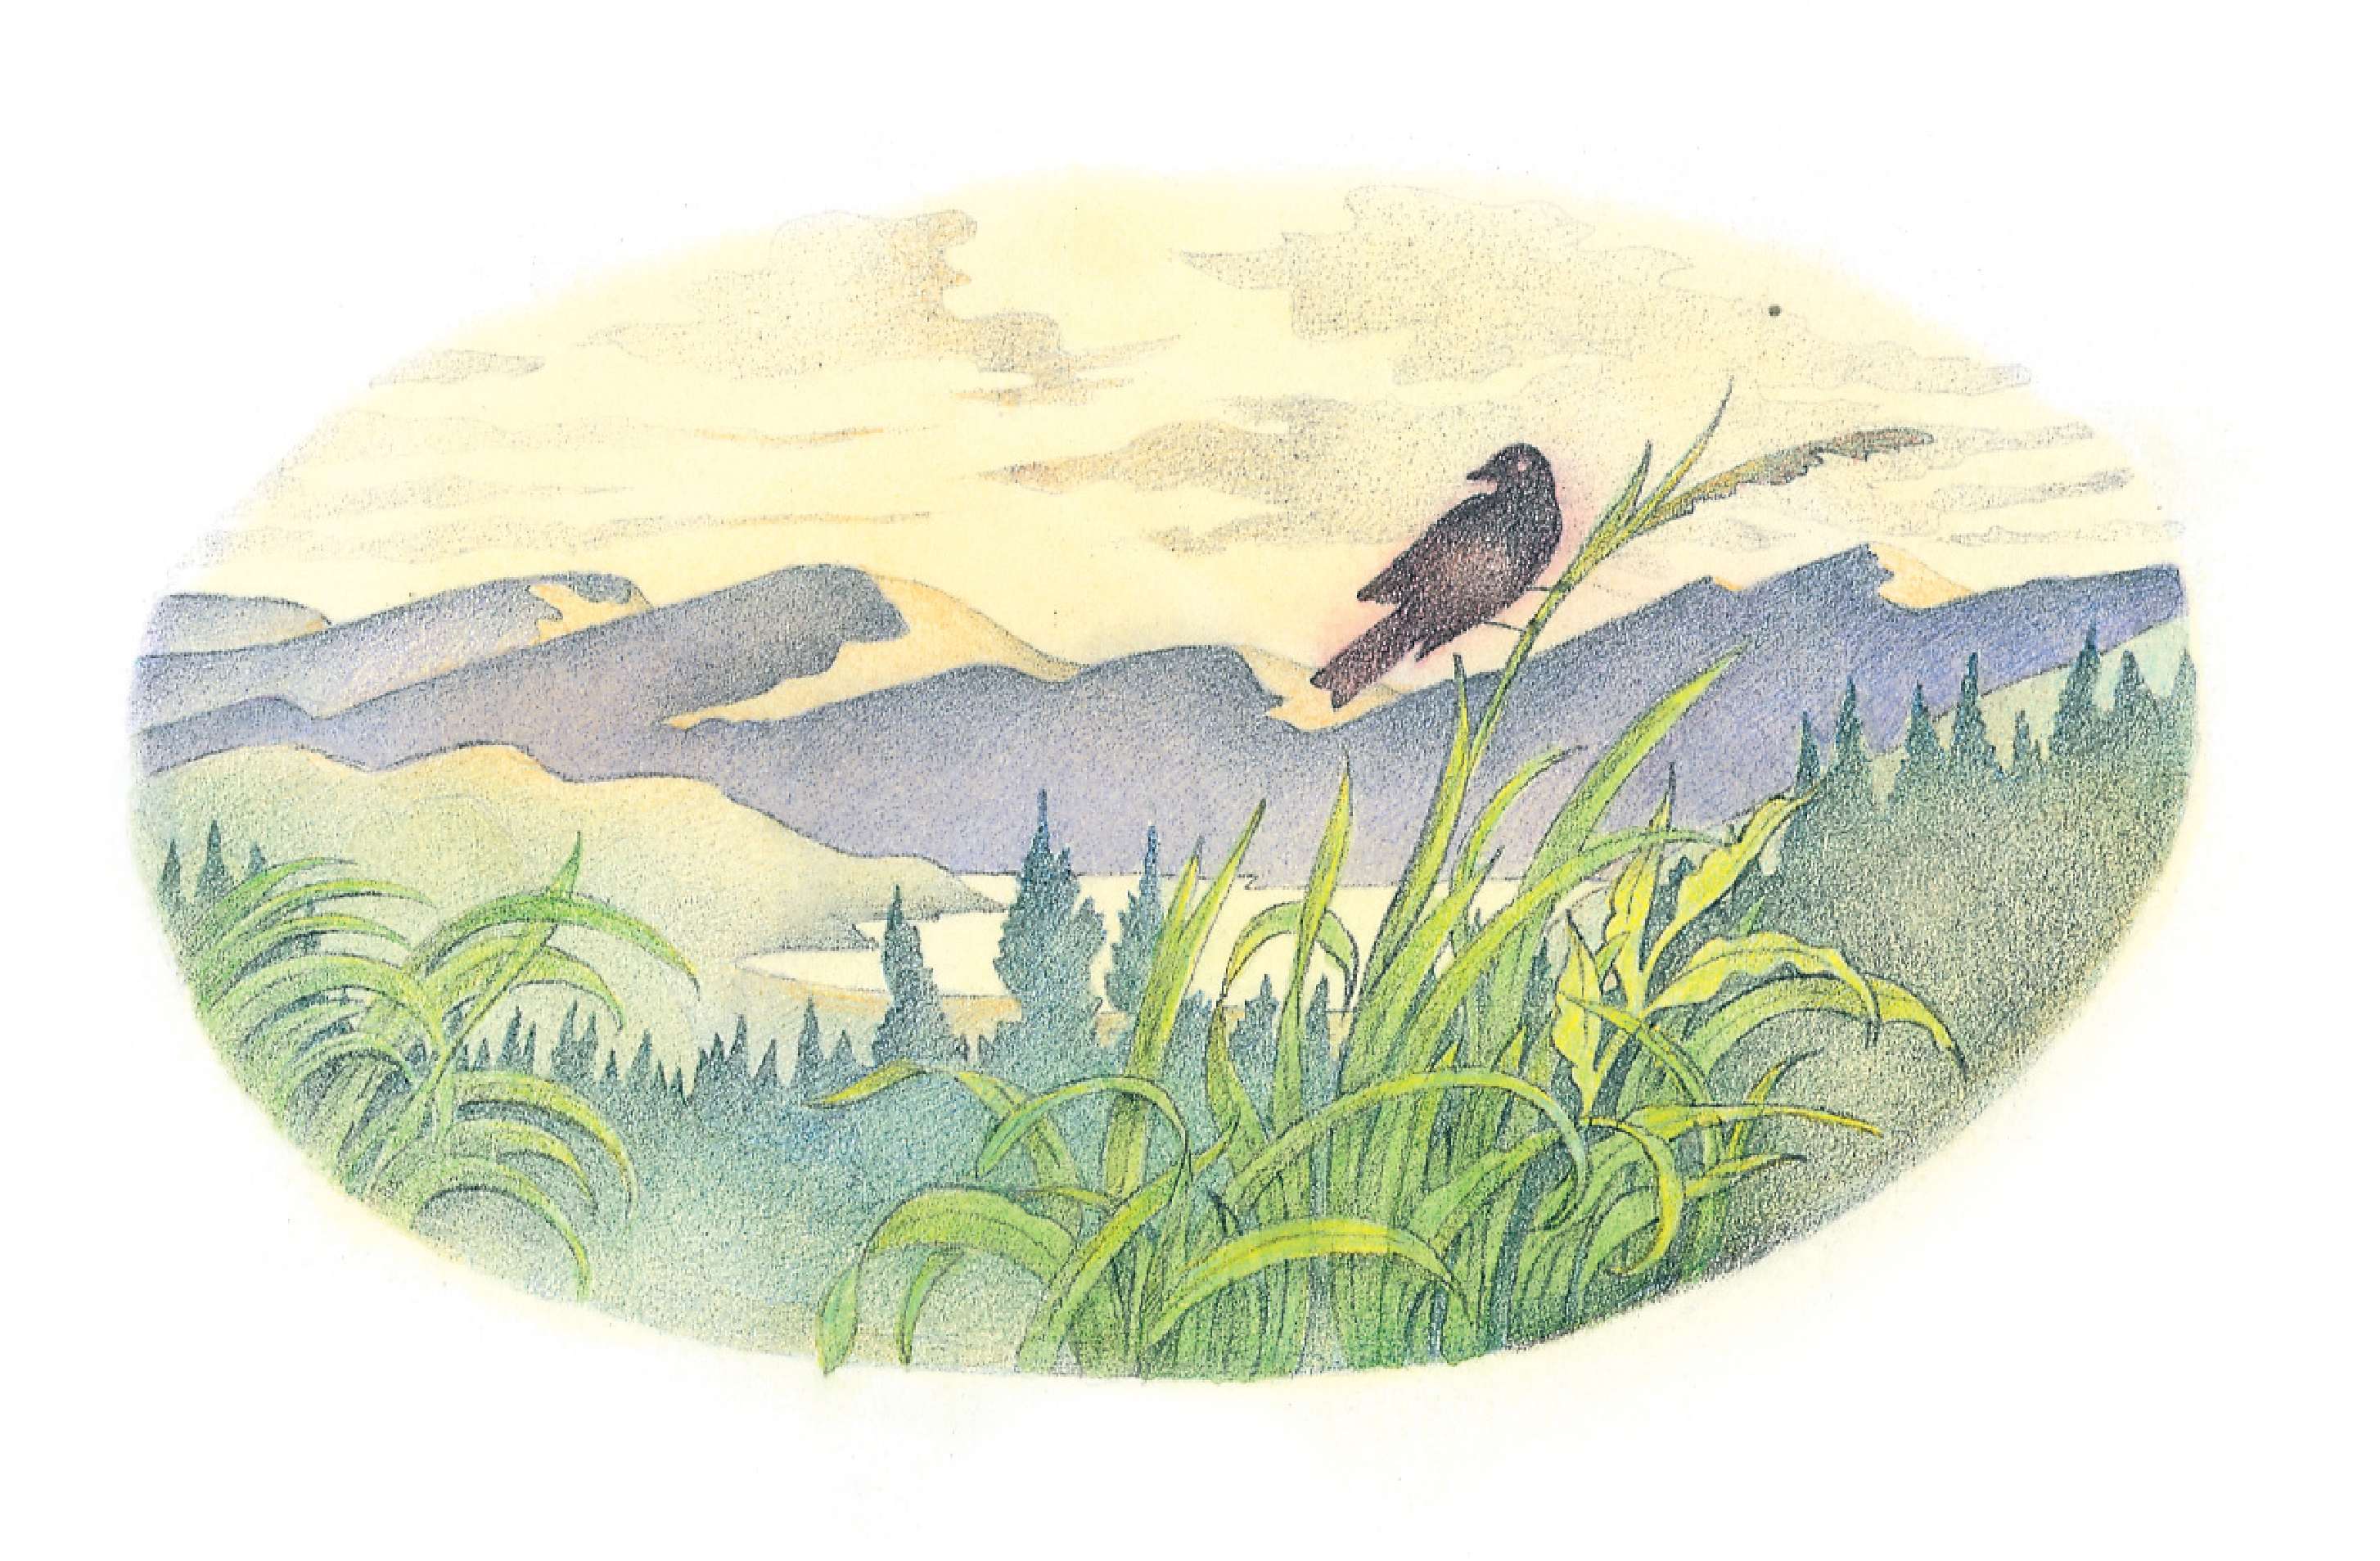 """A bird landing on a long blade of grass. From the Children's Songbook, page 288, """"Impromptu""""; watercolor illustration by Richard Hull."""